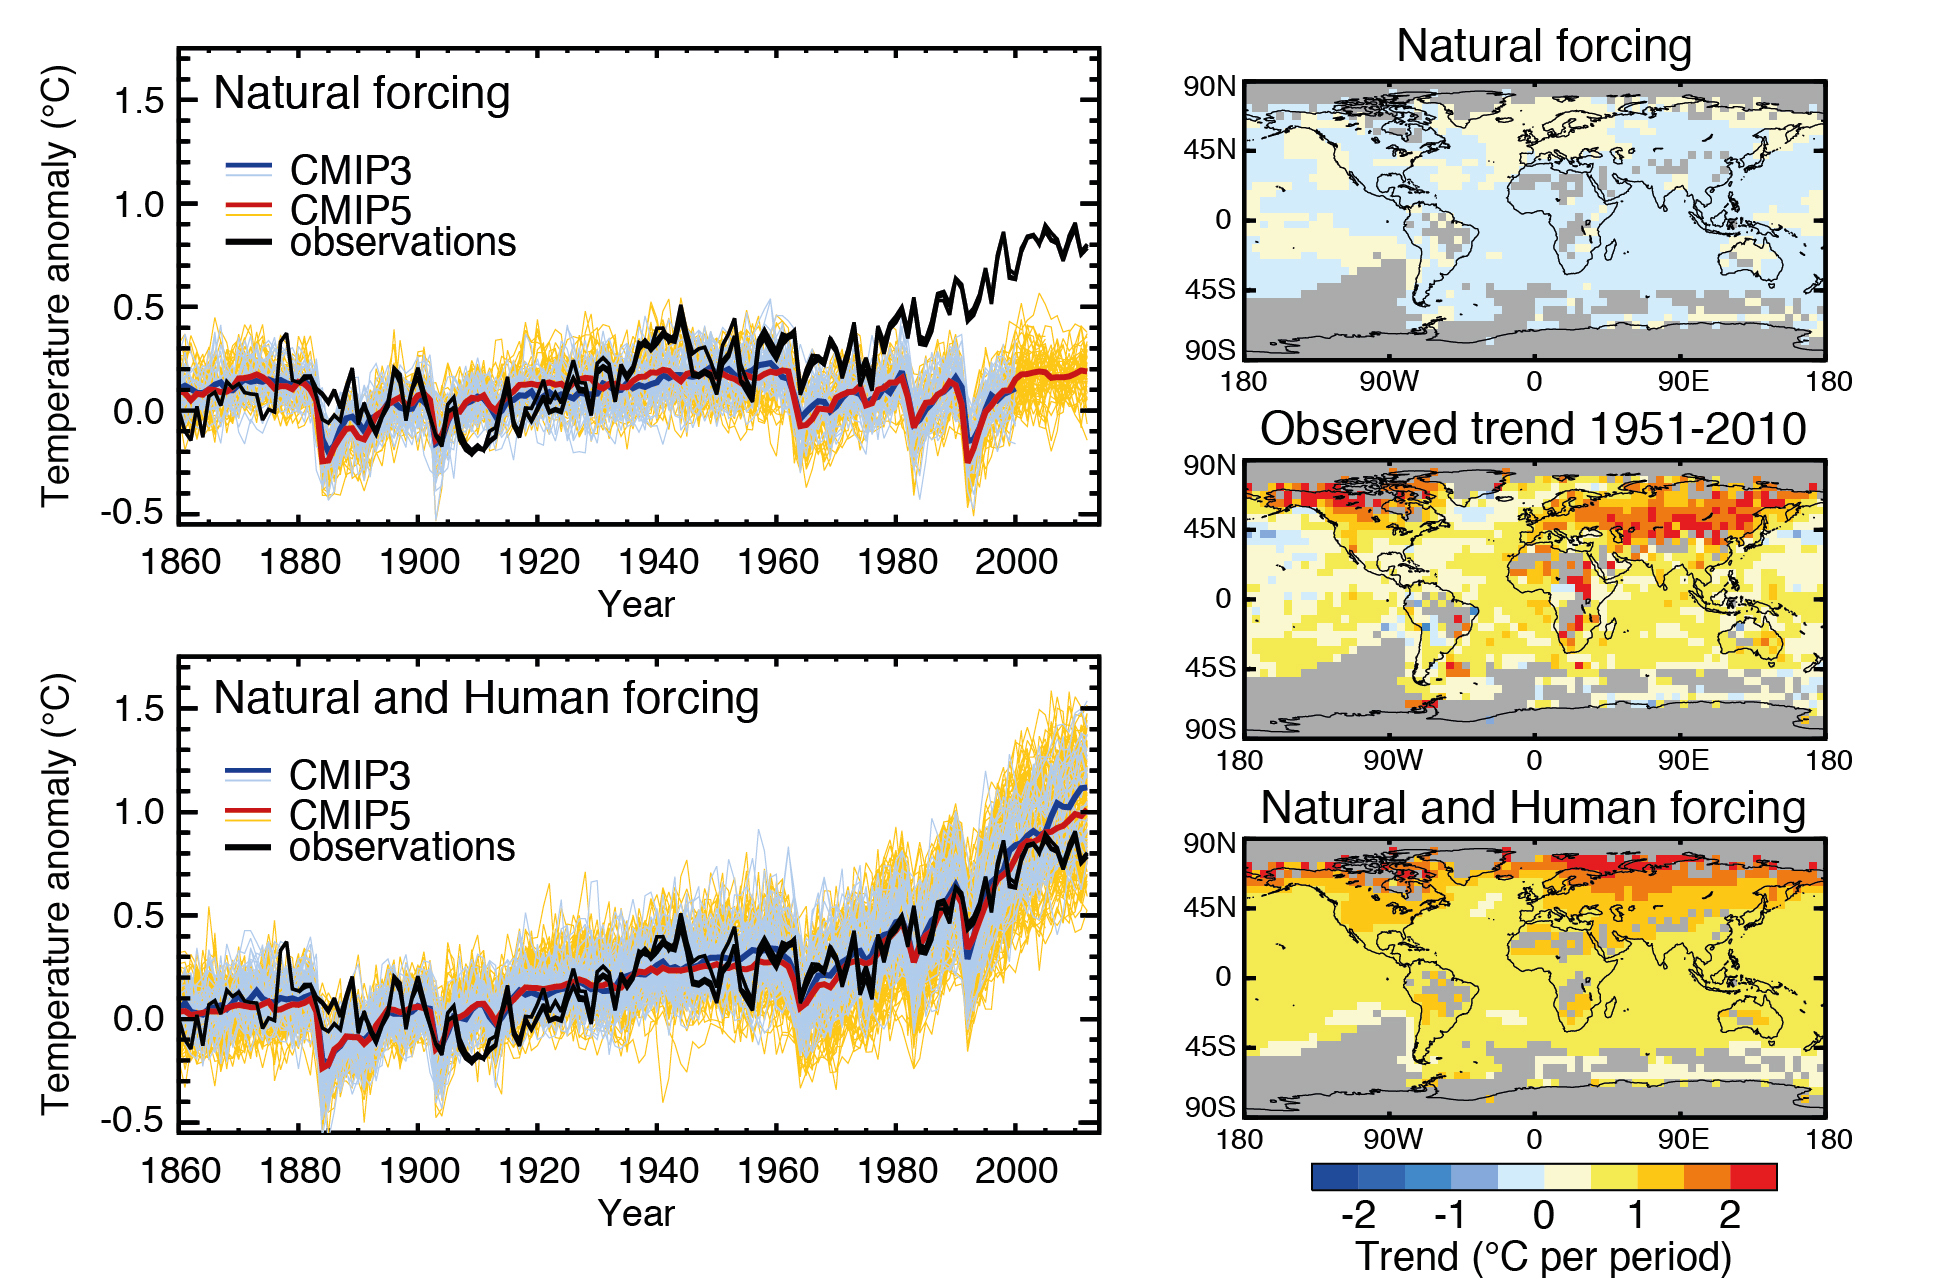 Comparison of climate model simulations with observed surface temperature changes. Left panels show timeseries of globally averaged surface temperatures from the current generation of climate models (CMIP5; yellow thin lines show individual models, red thick line shows the multi model mean) and the previous generation (CMIP3; blue lines, mostly obscured by the overlain yellow lines). Two sets of simulations are show. Top panels show models forced with natural forcings only, bottom panels show models forced with both natural and human forcings. From ipcc.ch. This is a key figure.